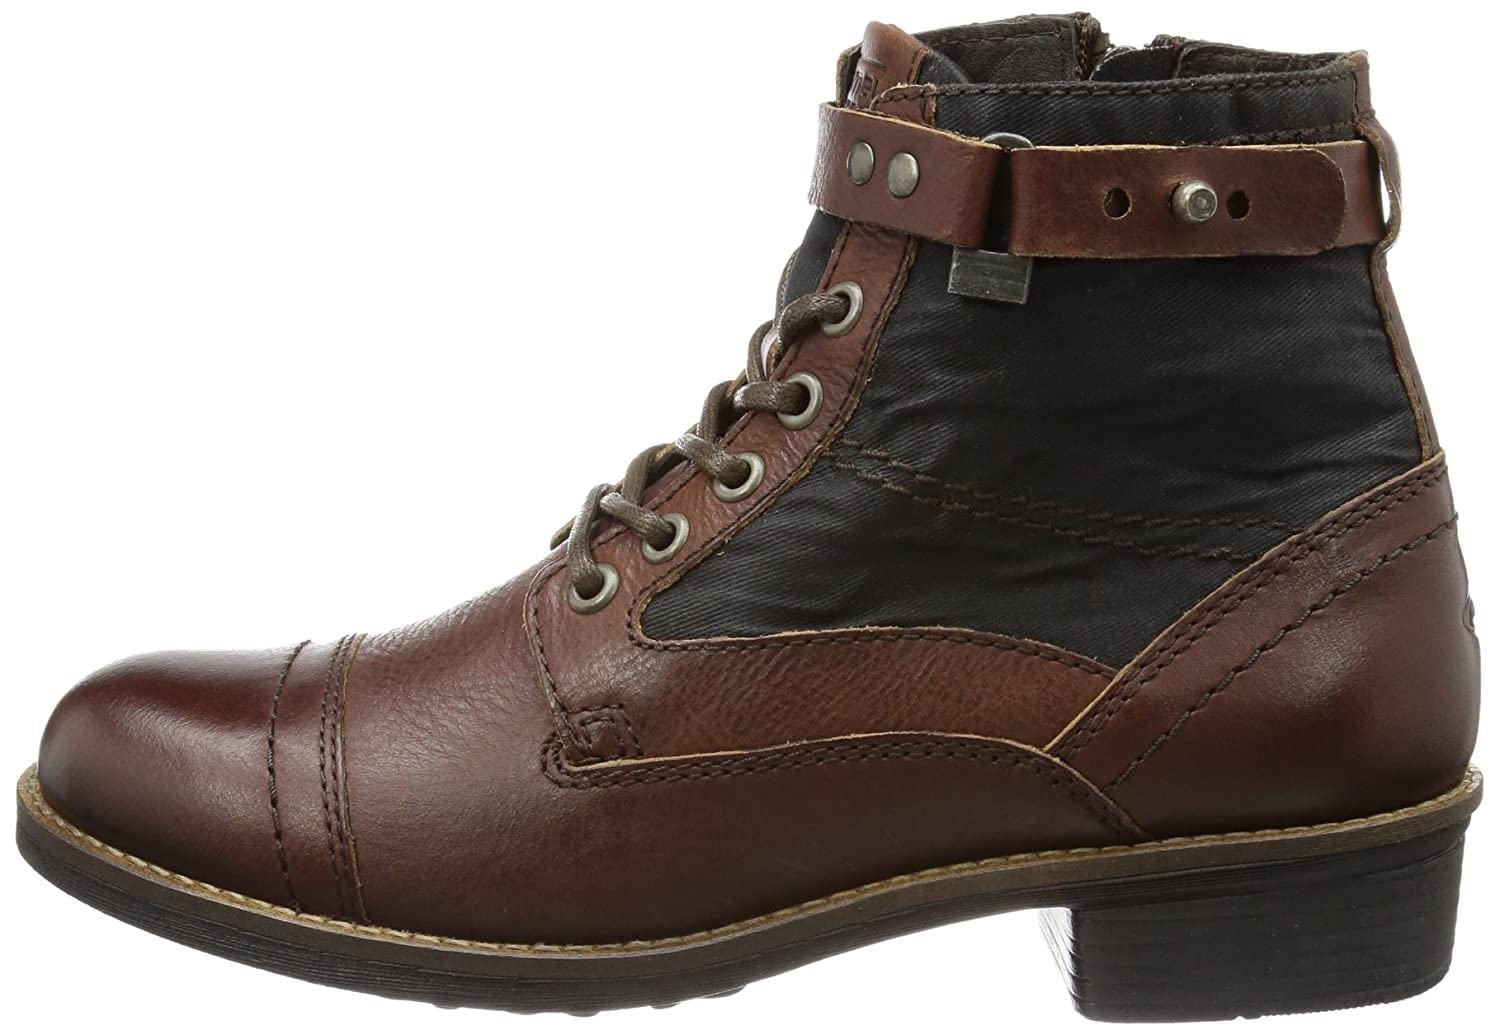 Frolic, Womens Boots Camel Active